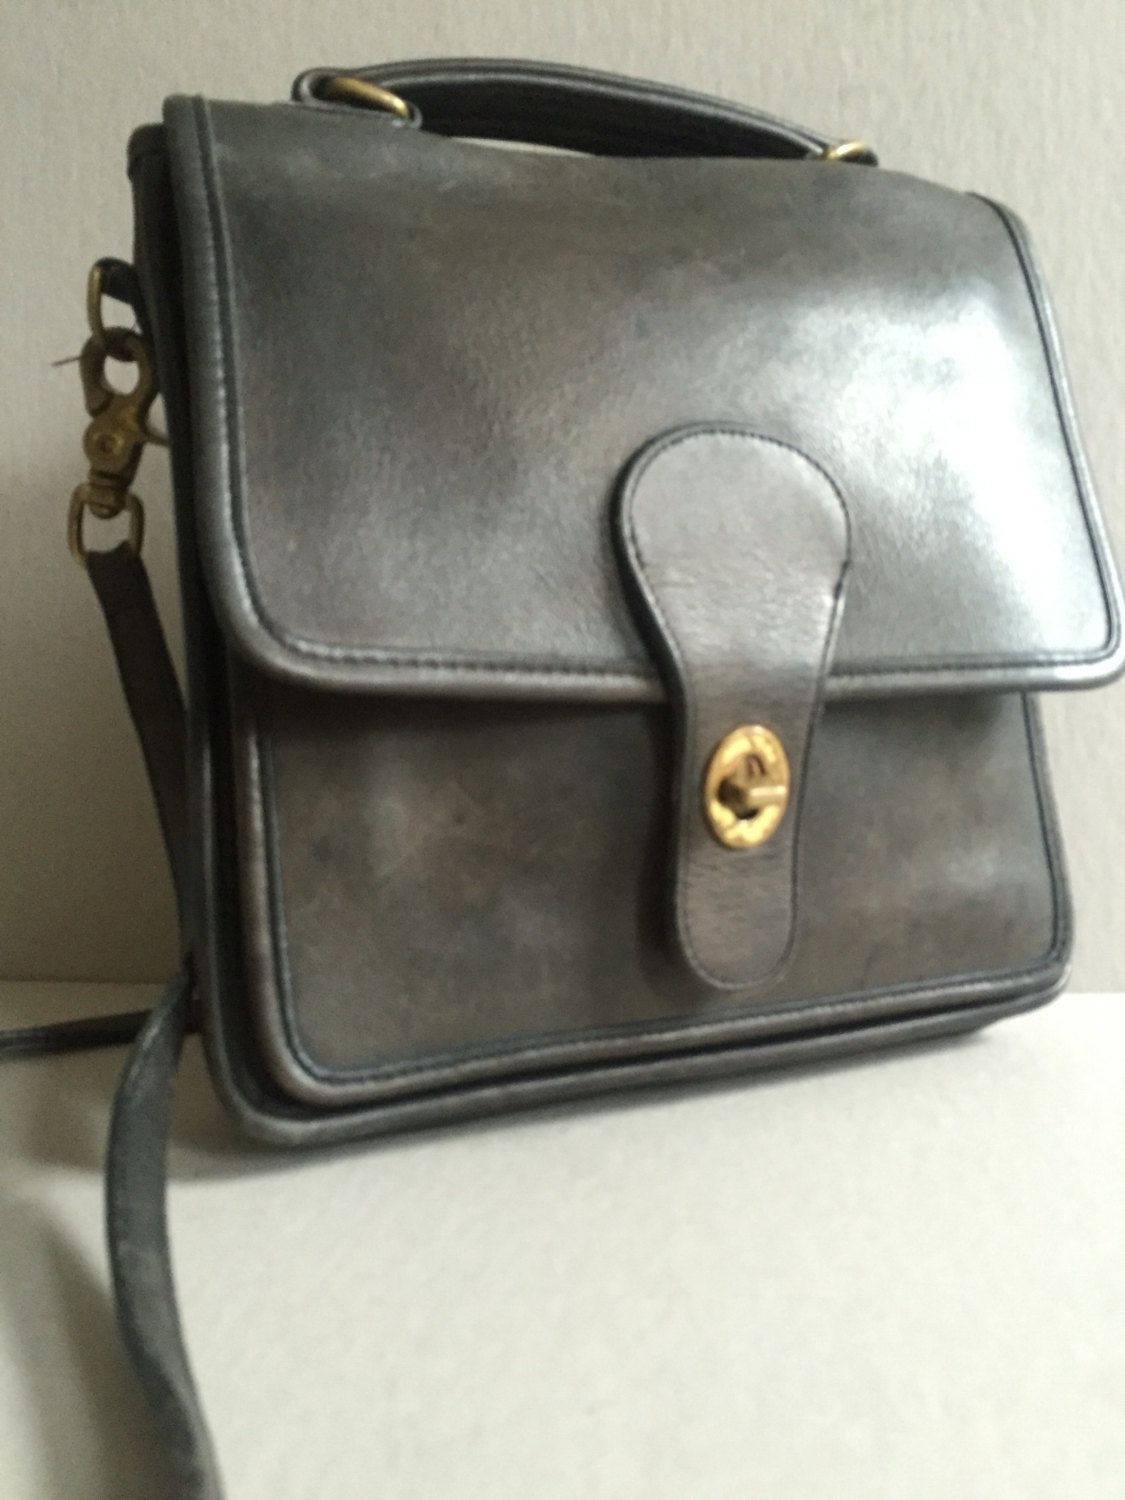 Coach Willis Station Bag Black Leather Crossbody 5130 Made In The Us By Brocantebedstuy On Etsy